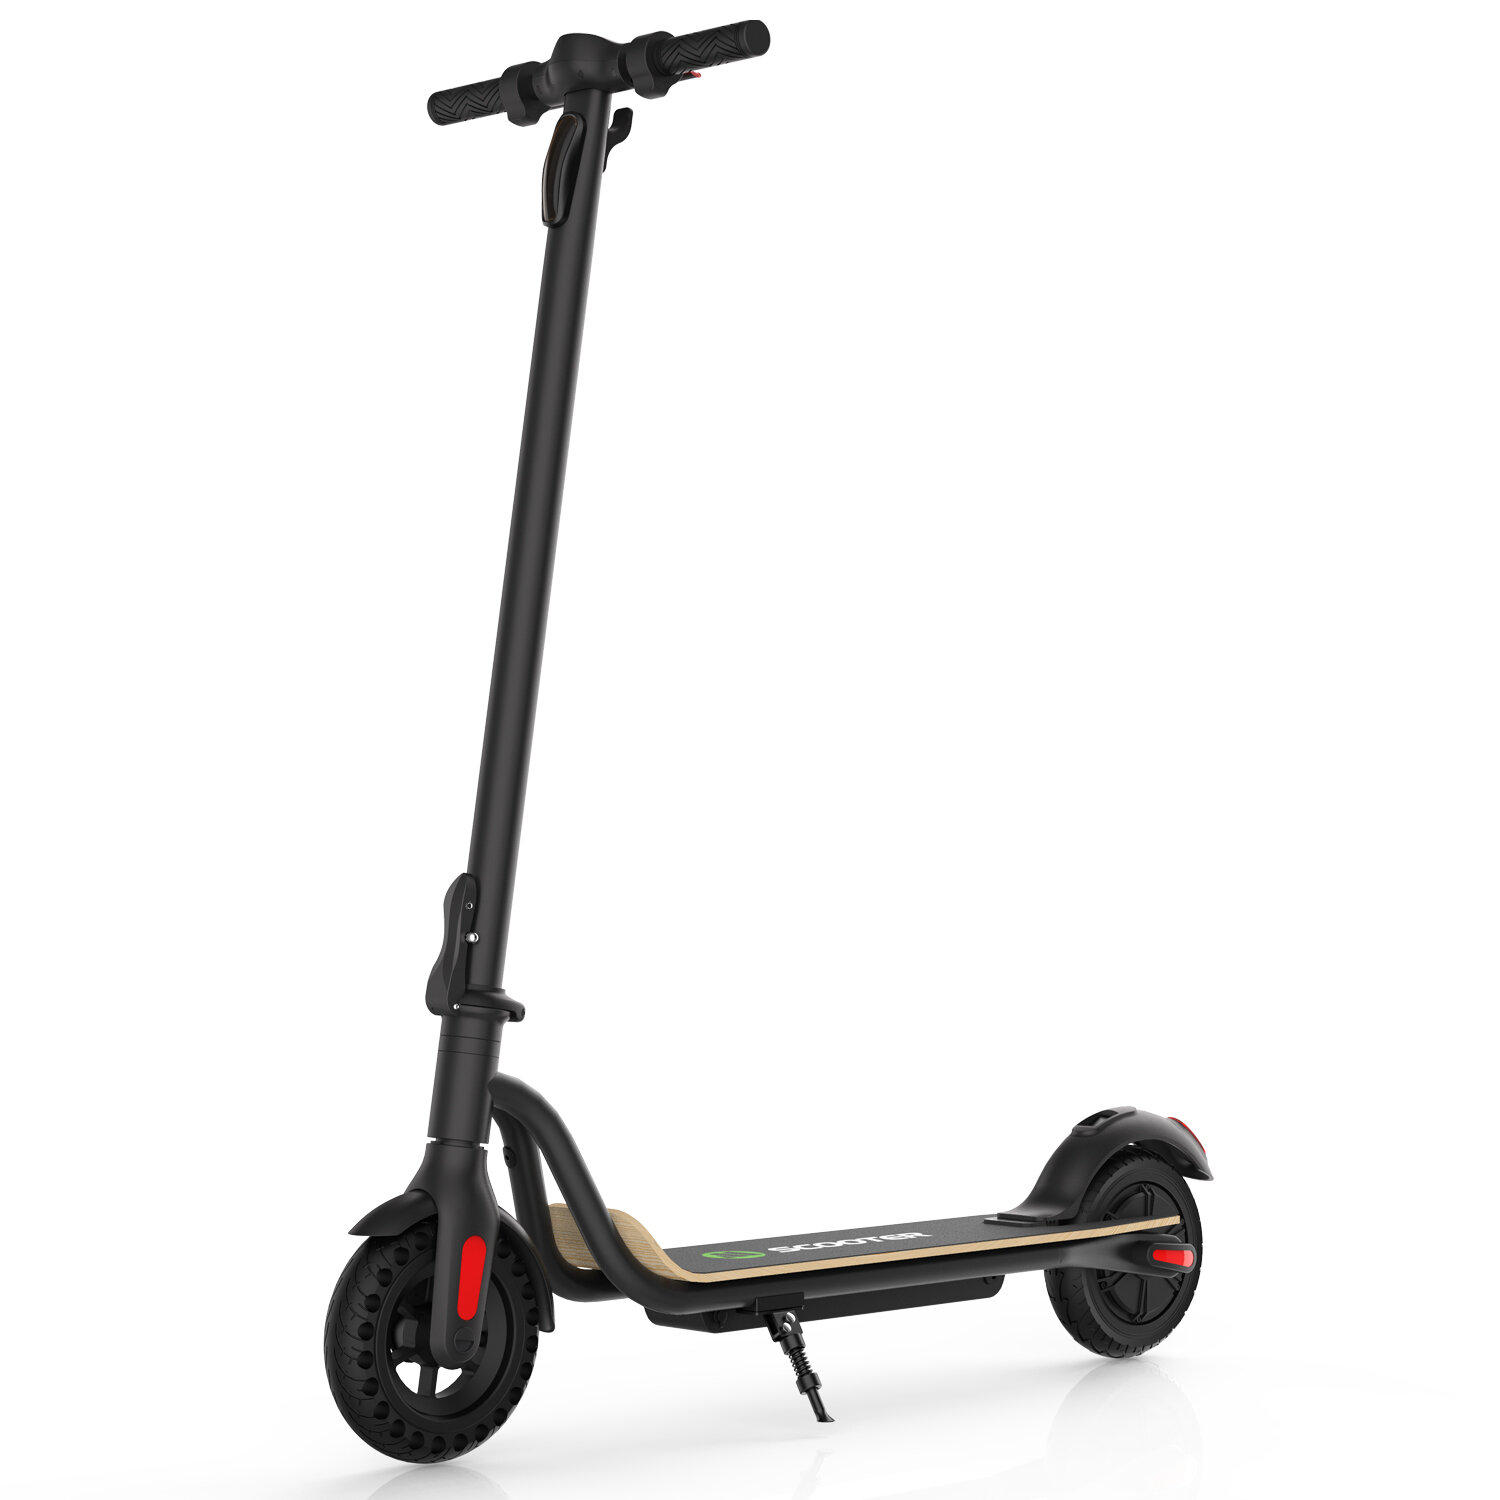 [EU Direct] MEGAWHEELS S10 36V 7.5Ah 250W Folding Electric Scooter 8 inch Wheels 3 Speed Modes 25km/h Top Speed 17-22km Mileage Range LED Display E Scooter